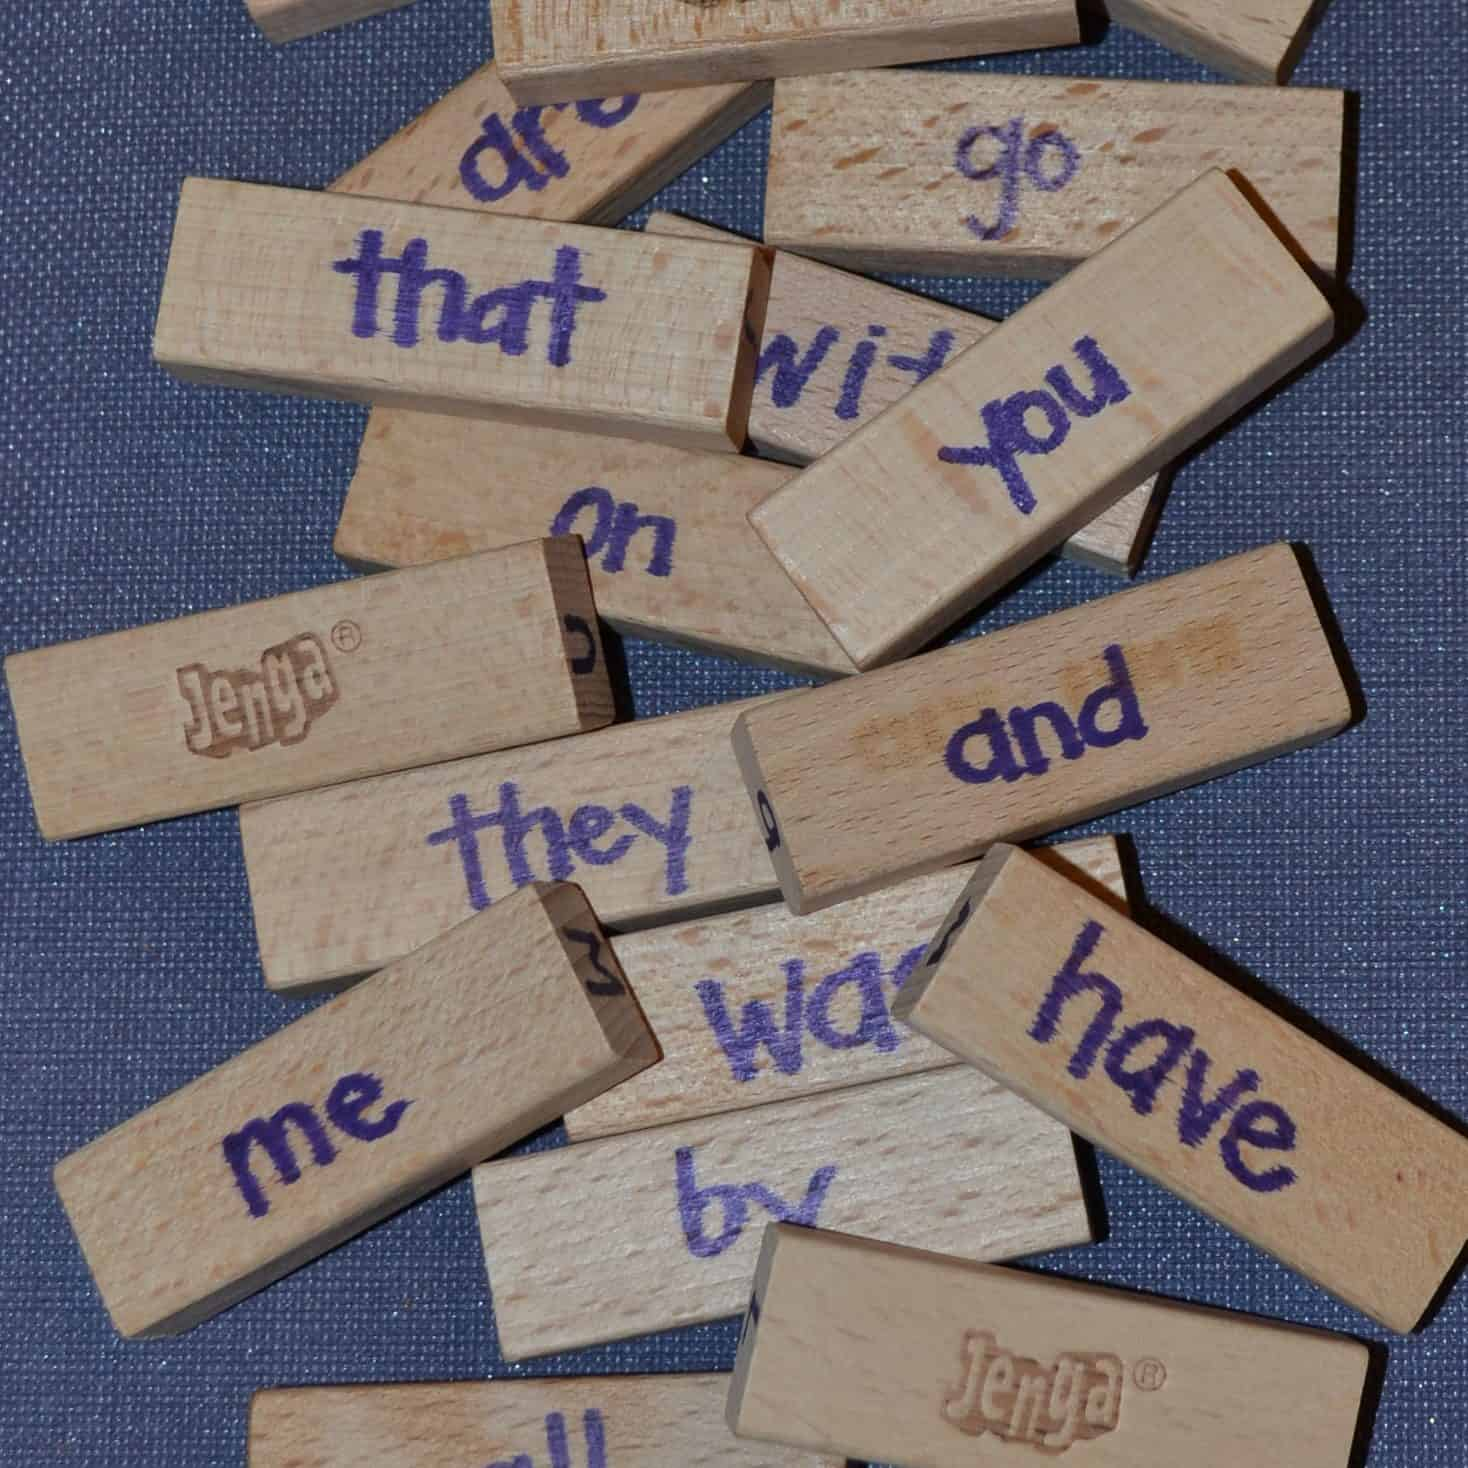 jenga blocks with sight words handwritten on them